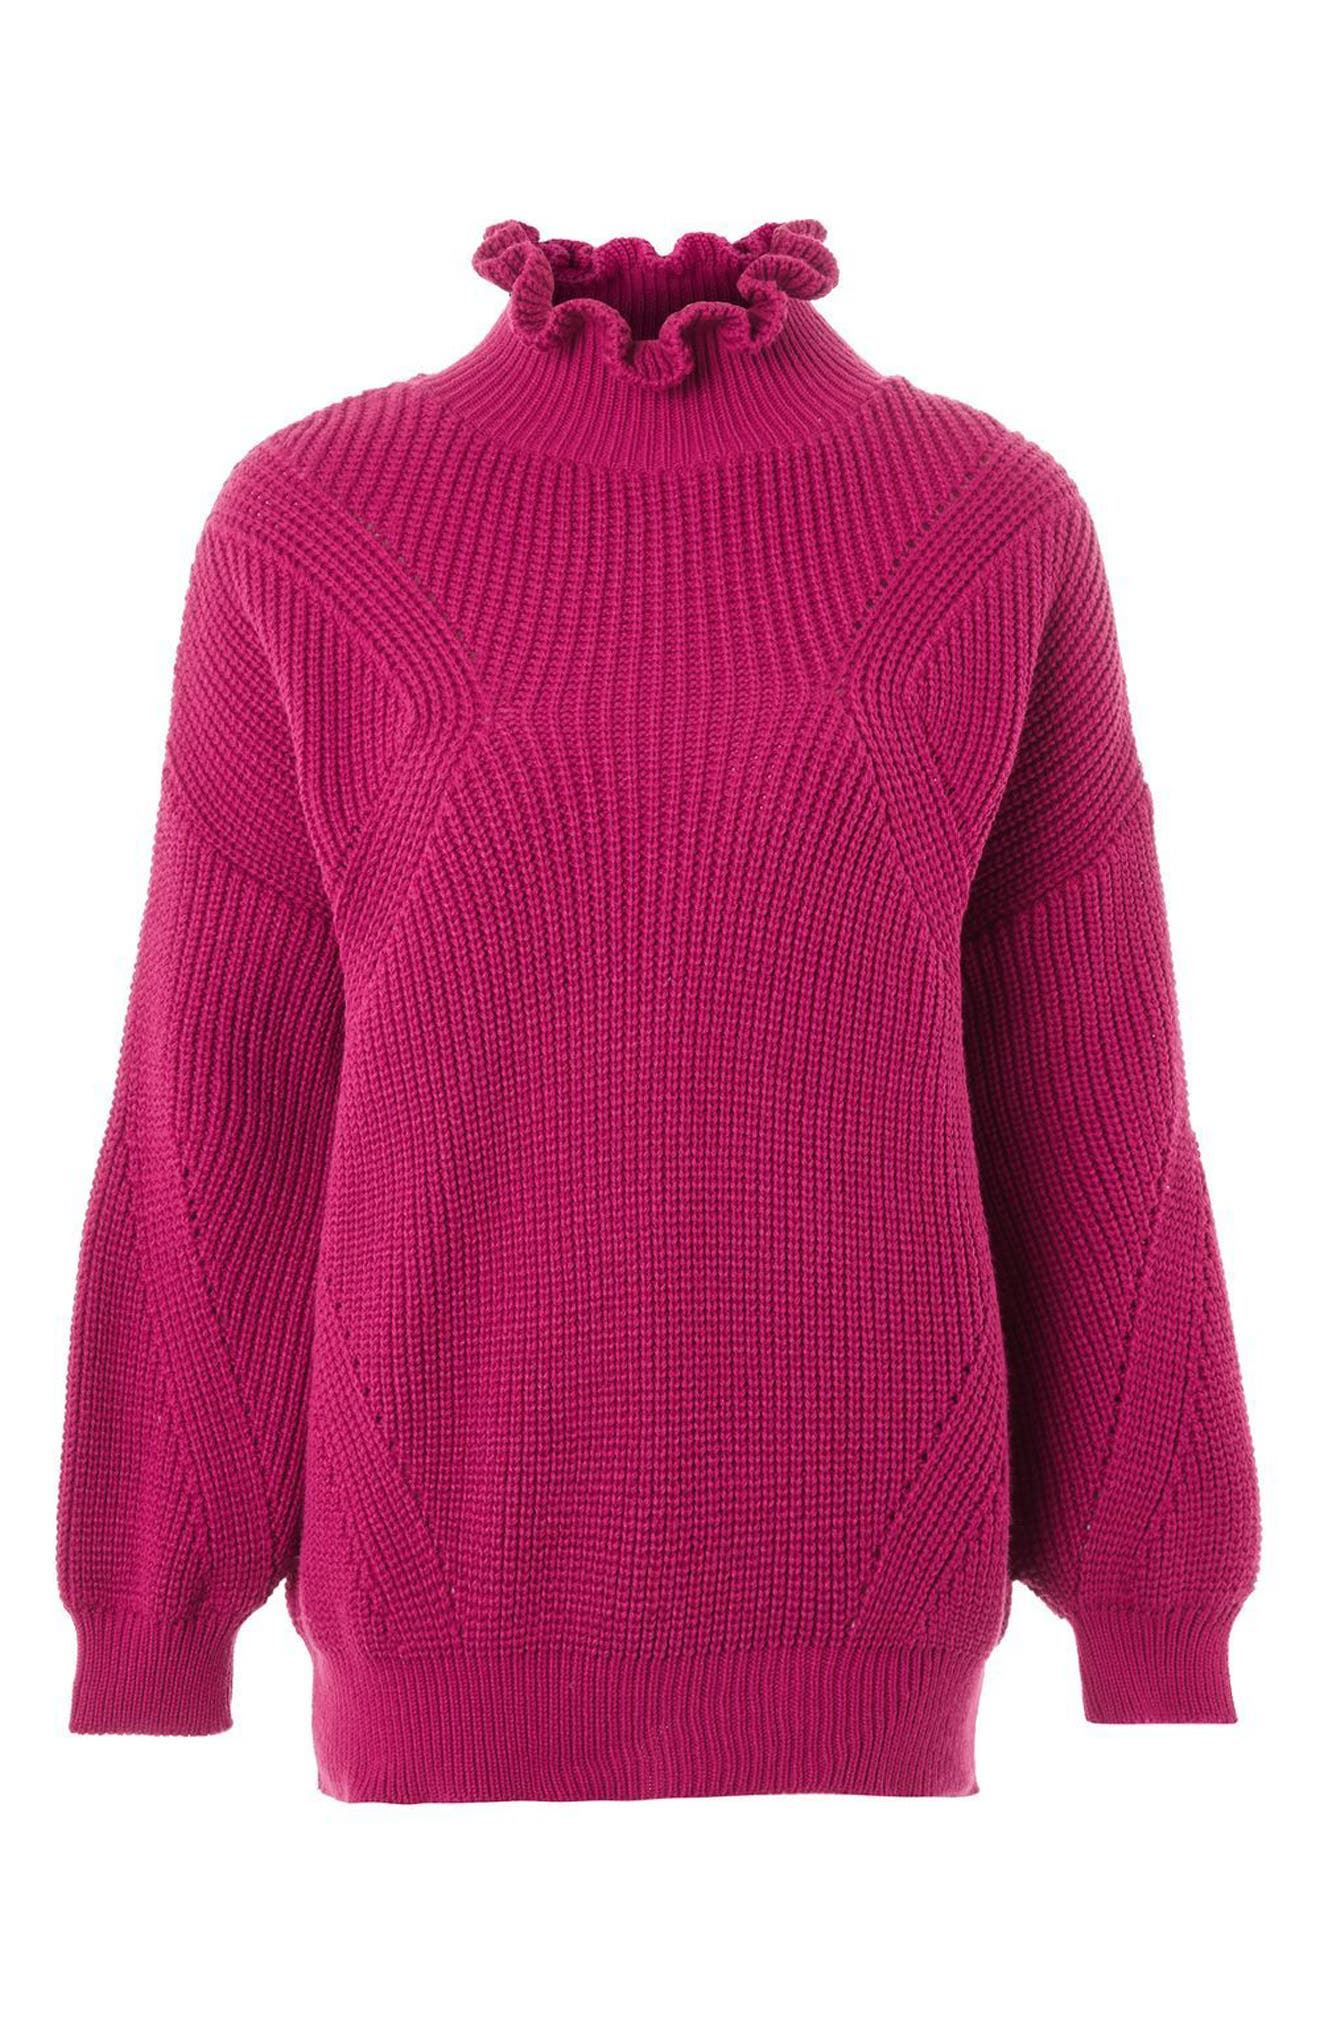 Frill Neck Sweater,                             Alternate thumbnail 4, color,                             Bright Pink